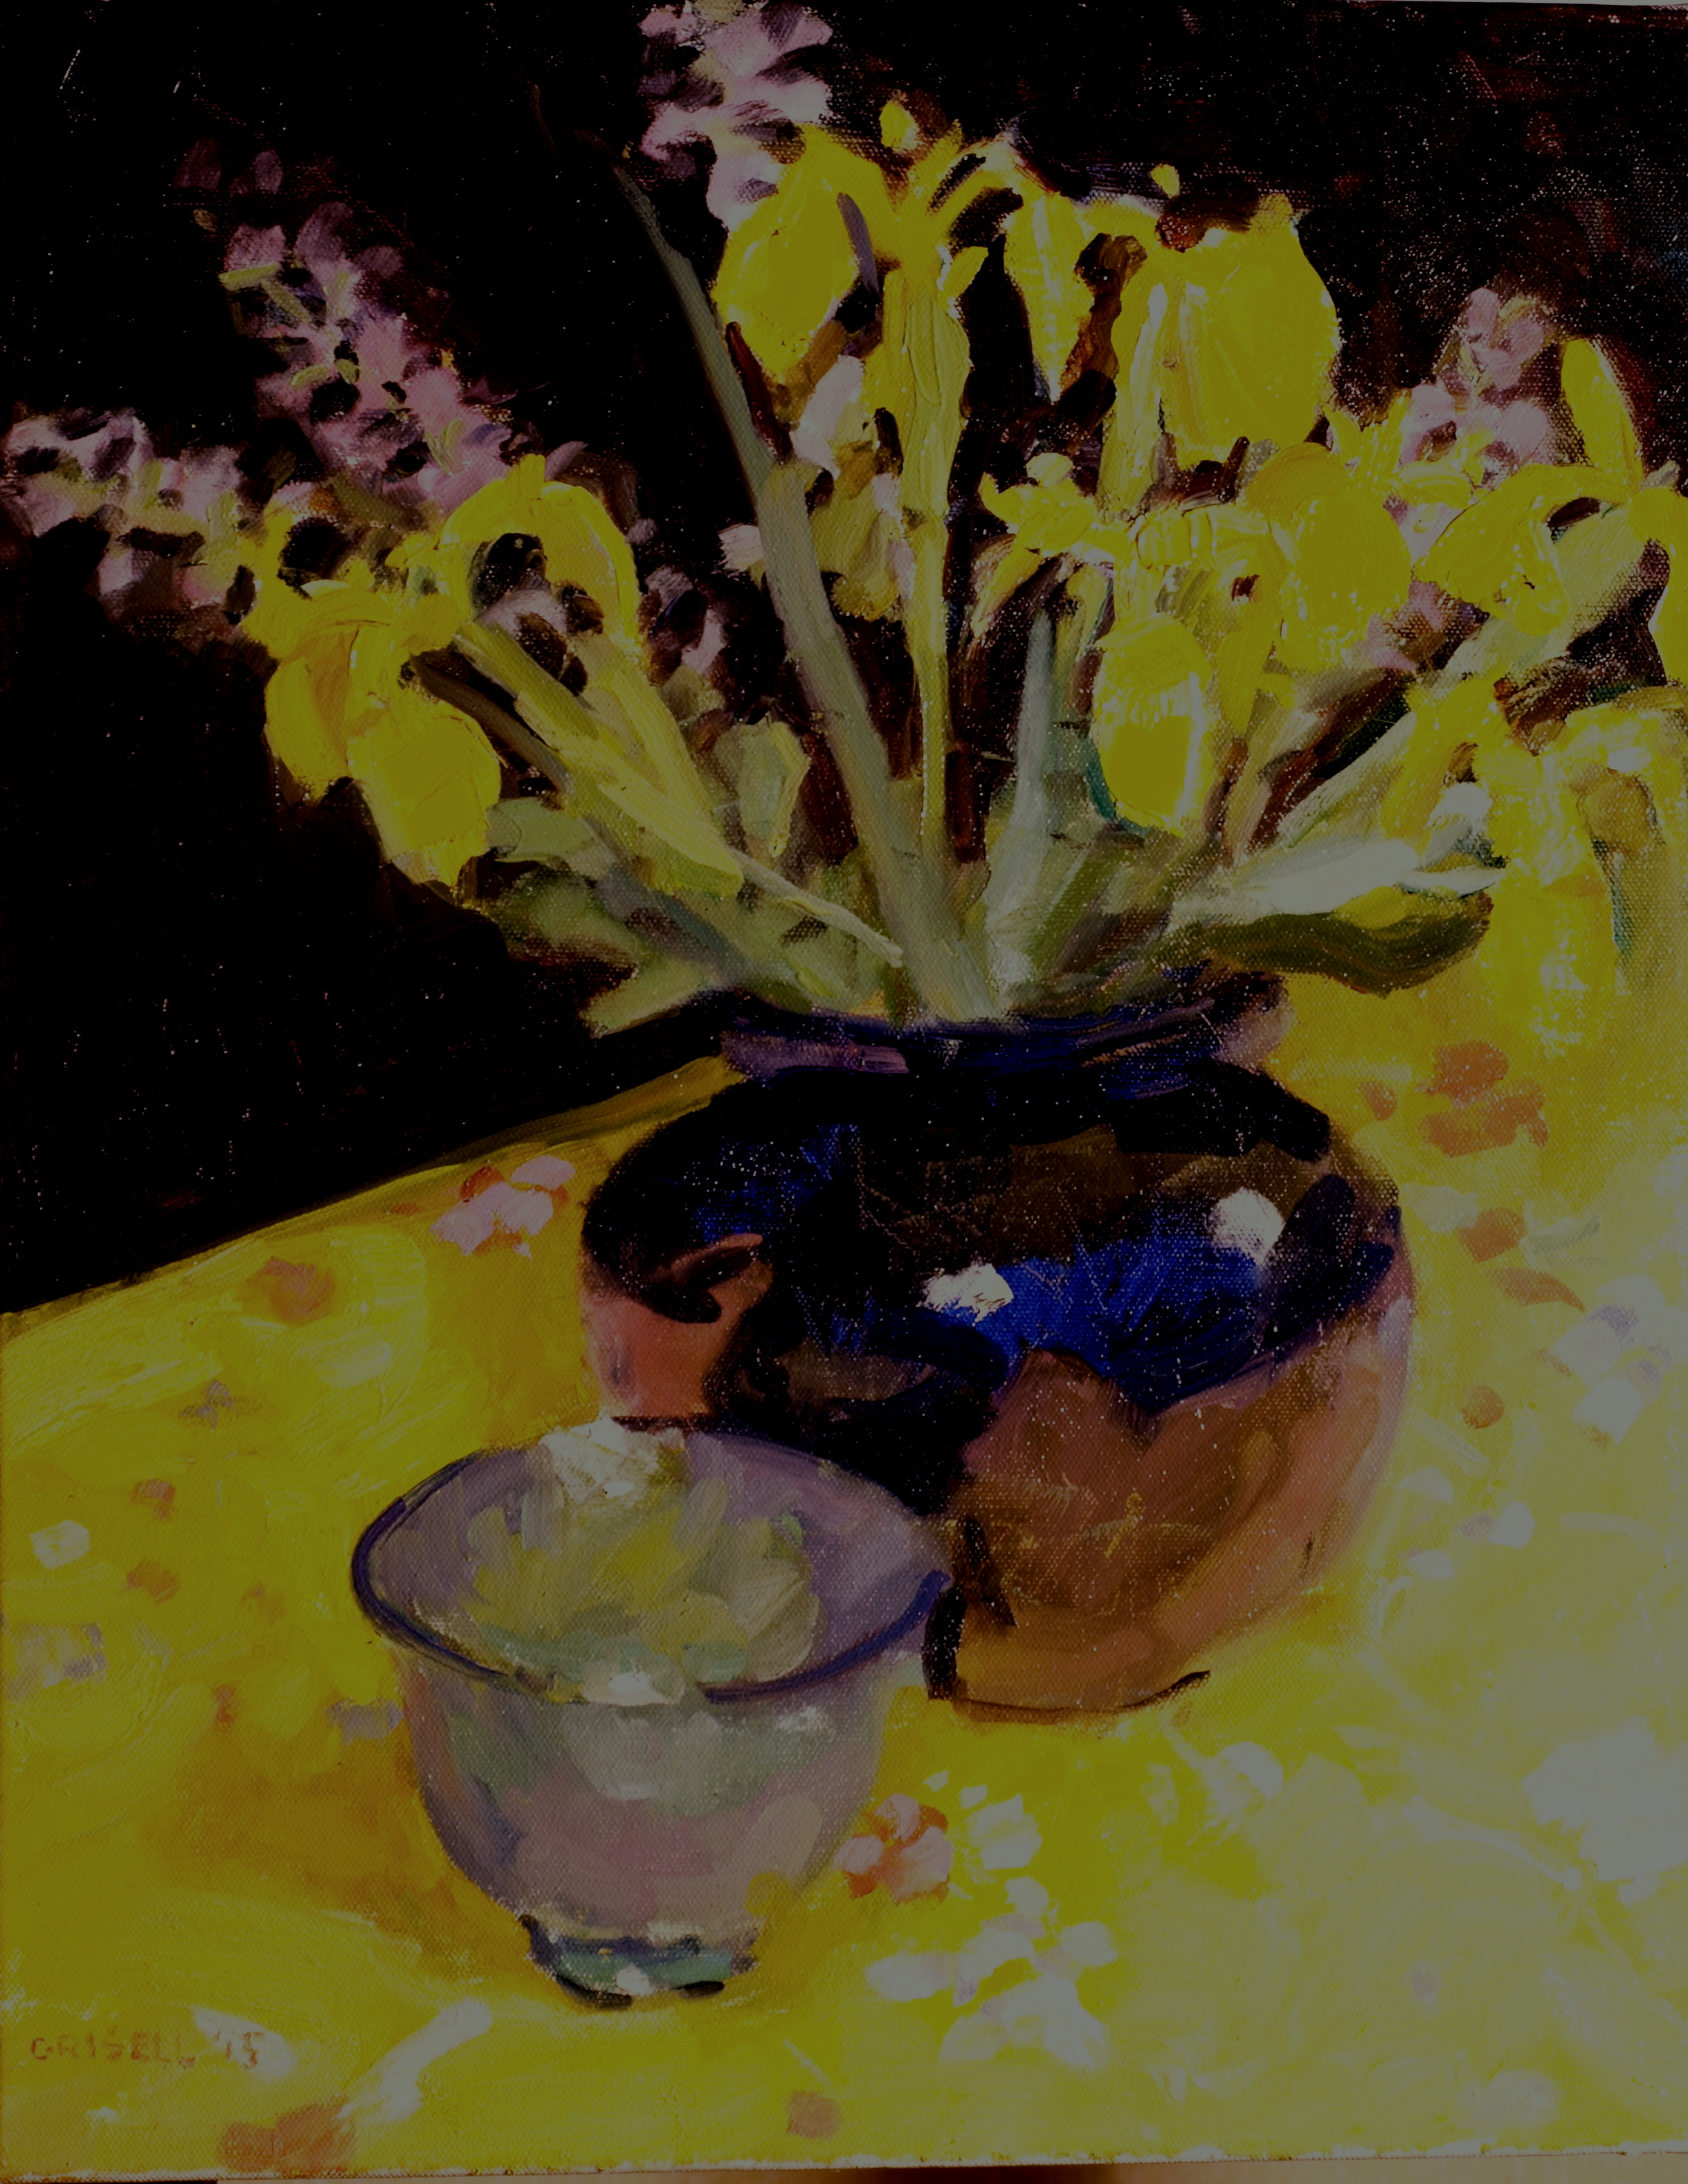 Yellow Iris and Sage, Oil on Canvas, 20 x 16 Inches, by Susan Grisell, $525